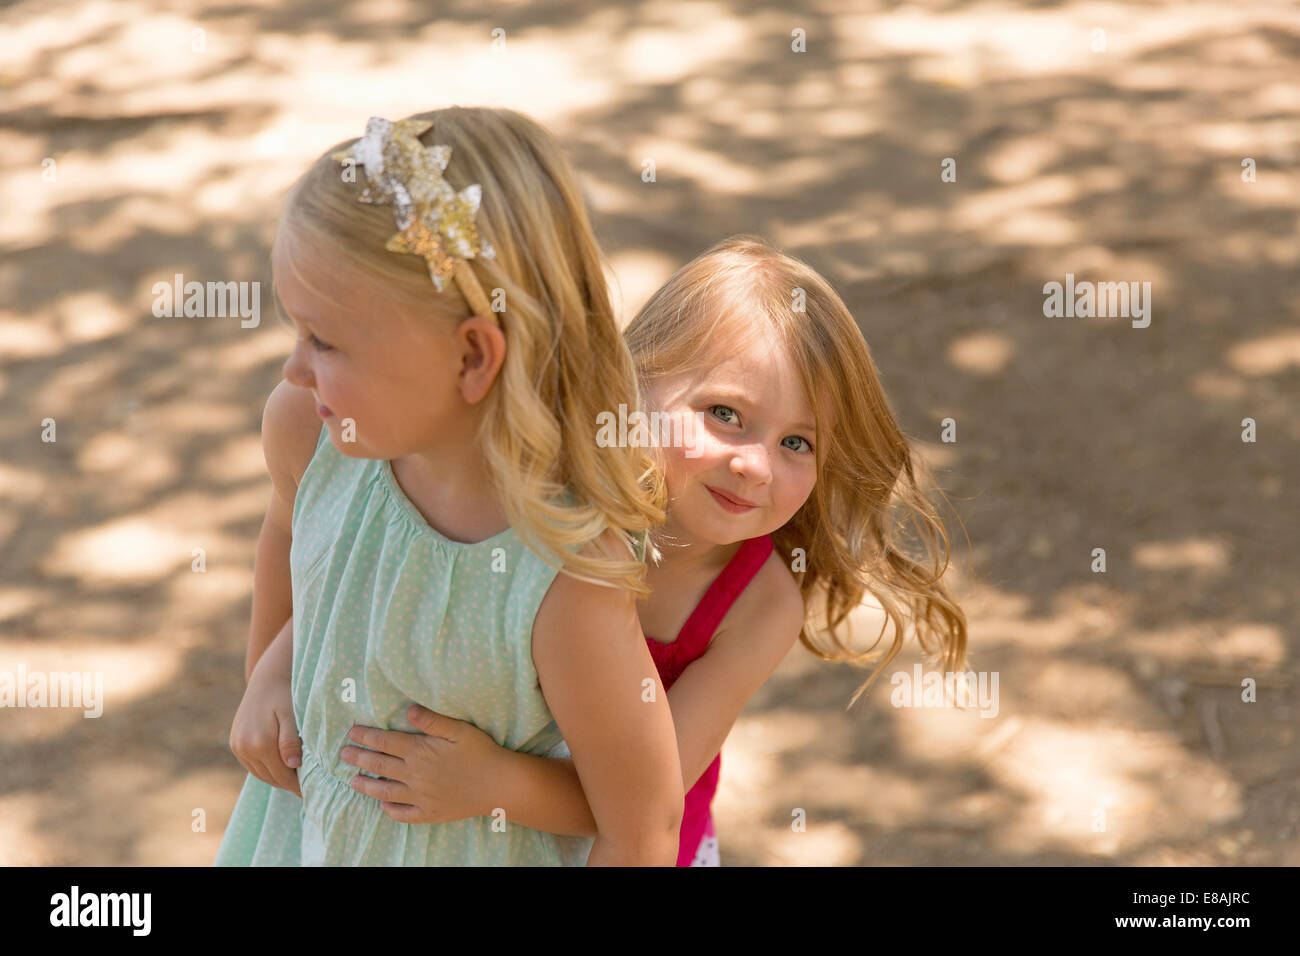 Young girl hiding behind sister in park - Stock Image